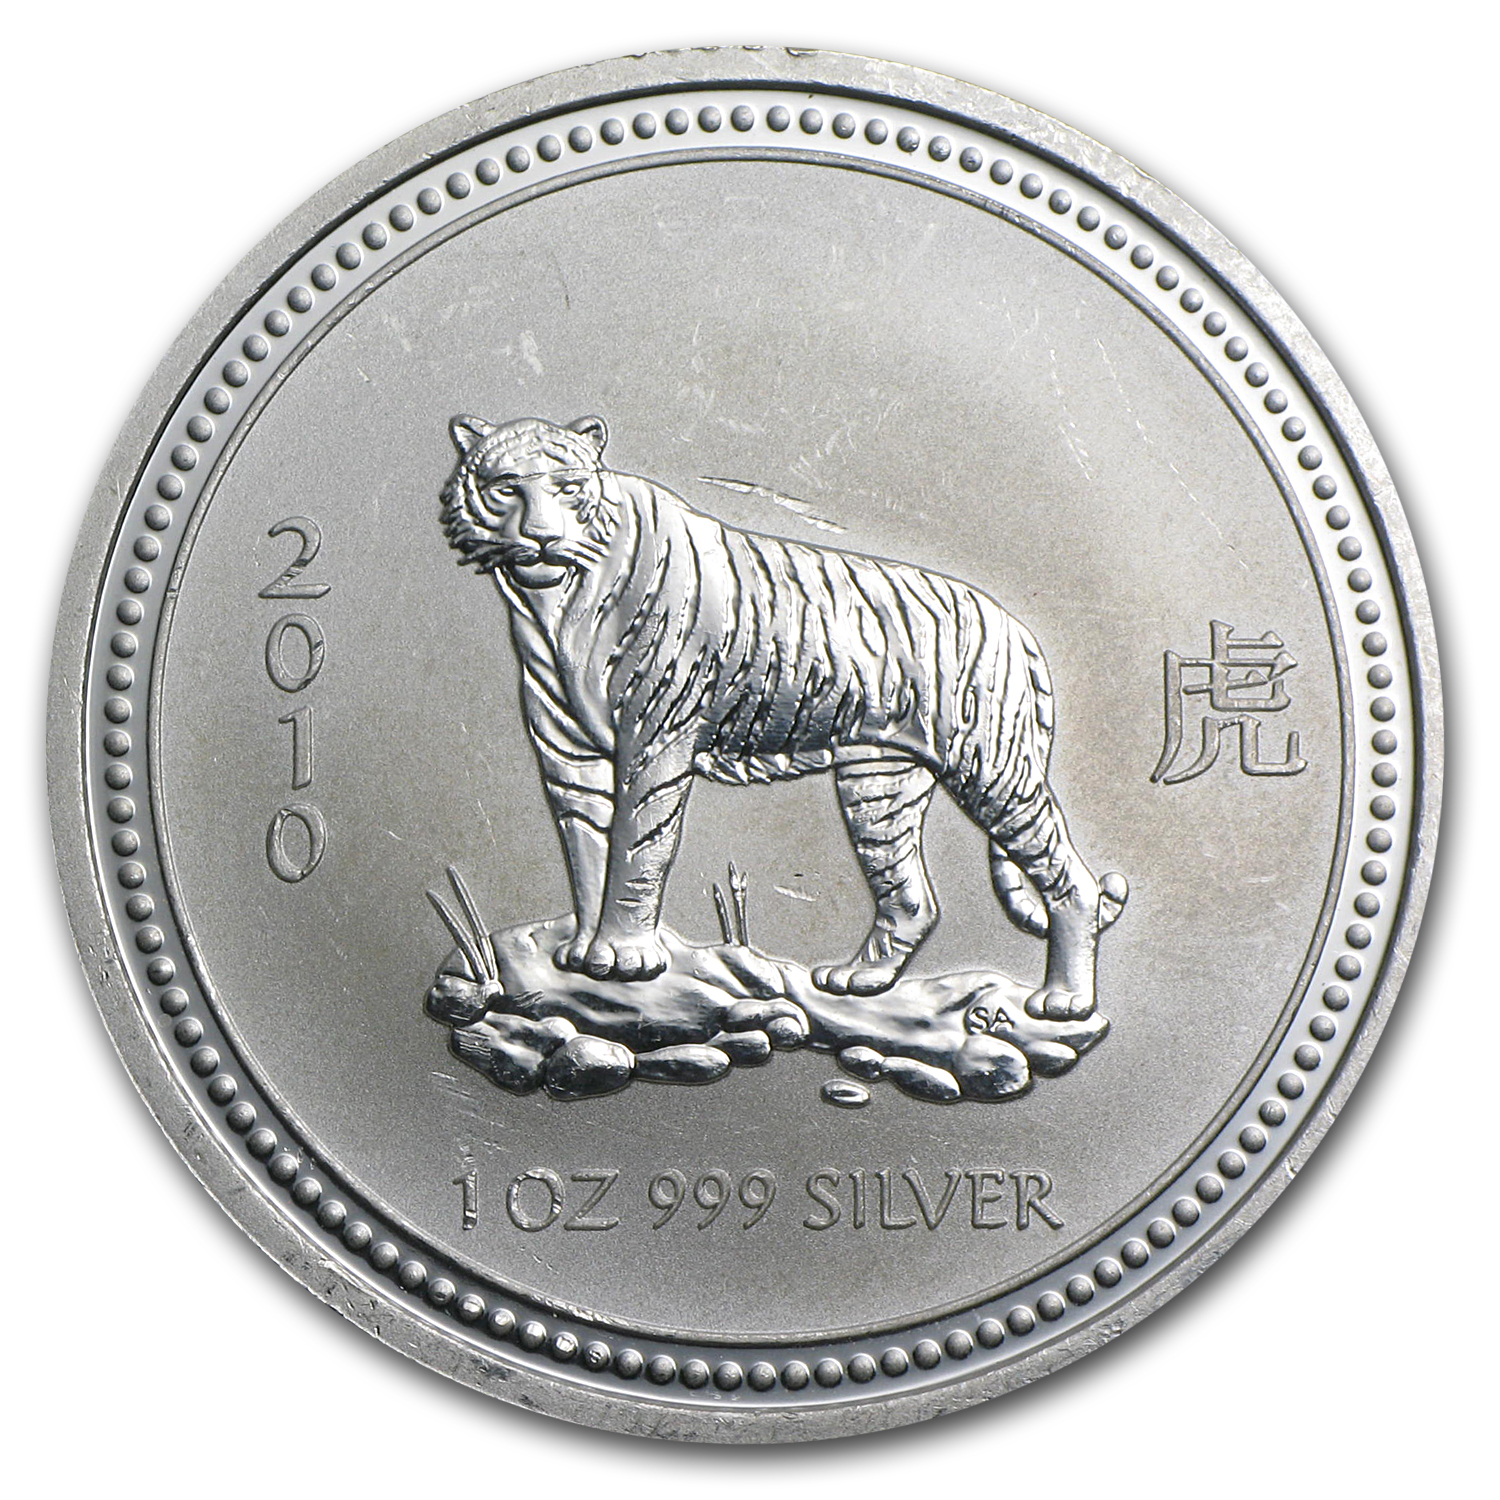 2010 1 oz Silver Lunar Year of the Tiger Series I (Abrasions)